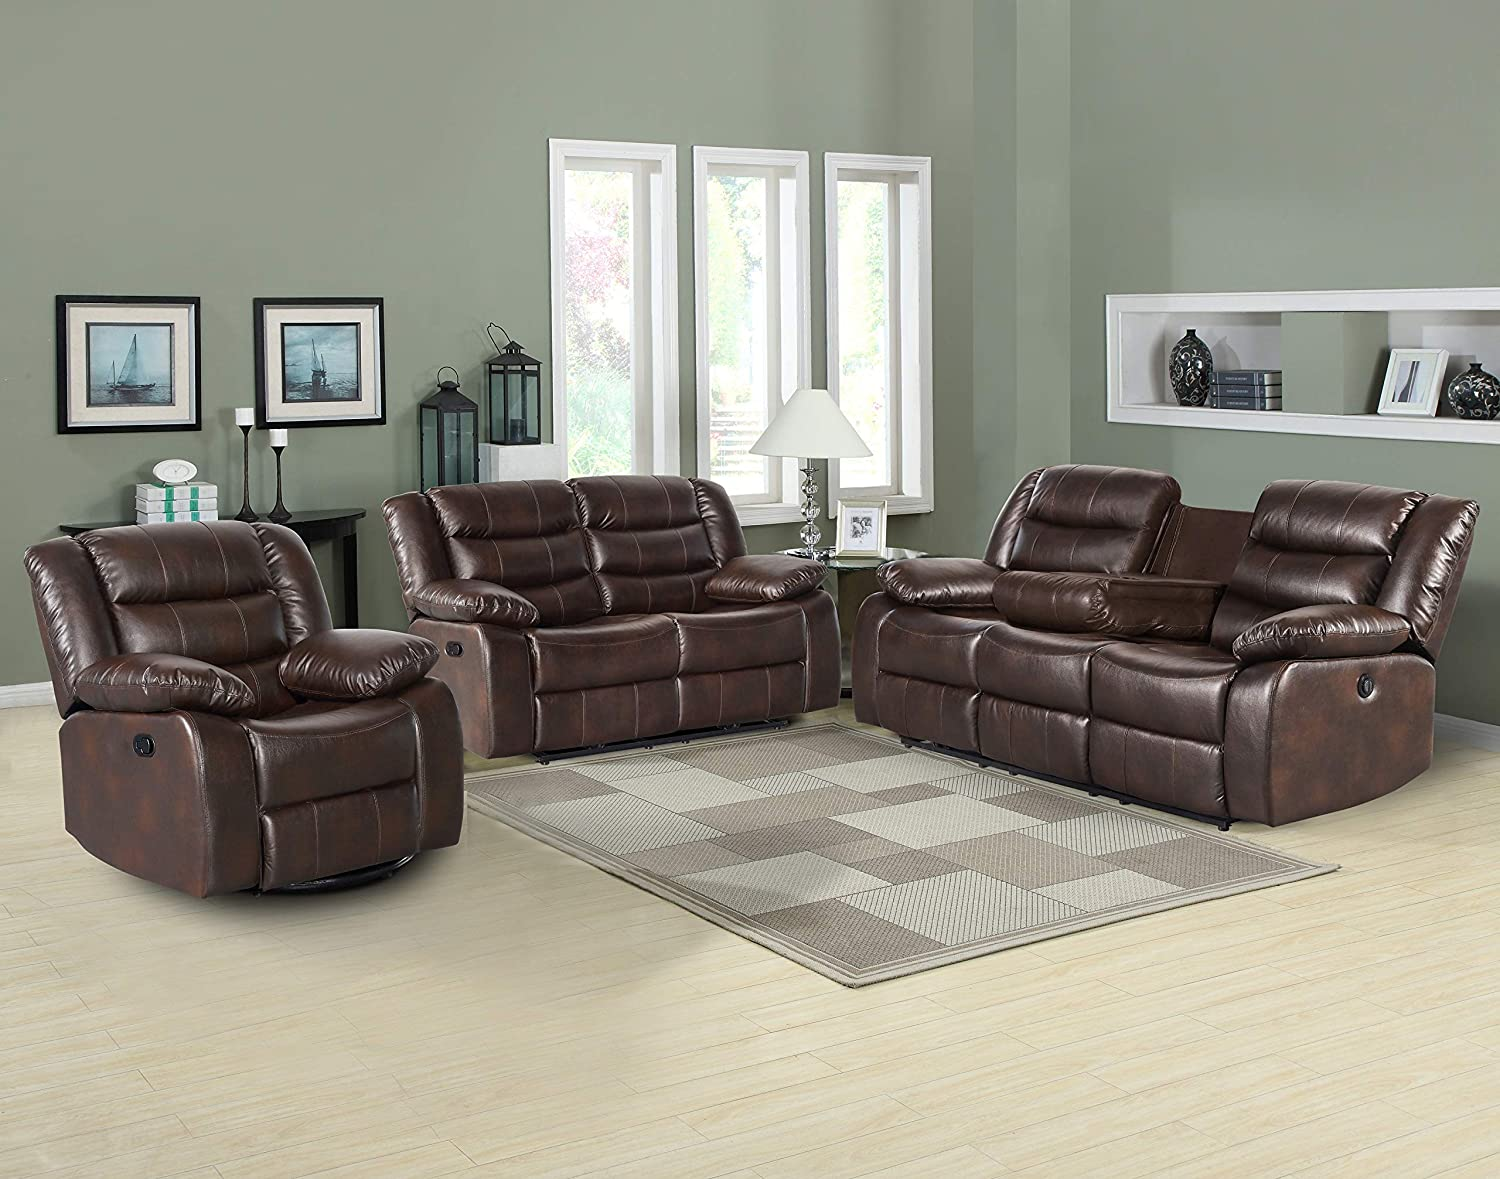 3PC Adeline Mid Century Modern Leatherette 3 Piece Living Room Reclining Set, Brown